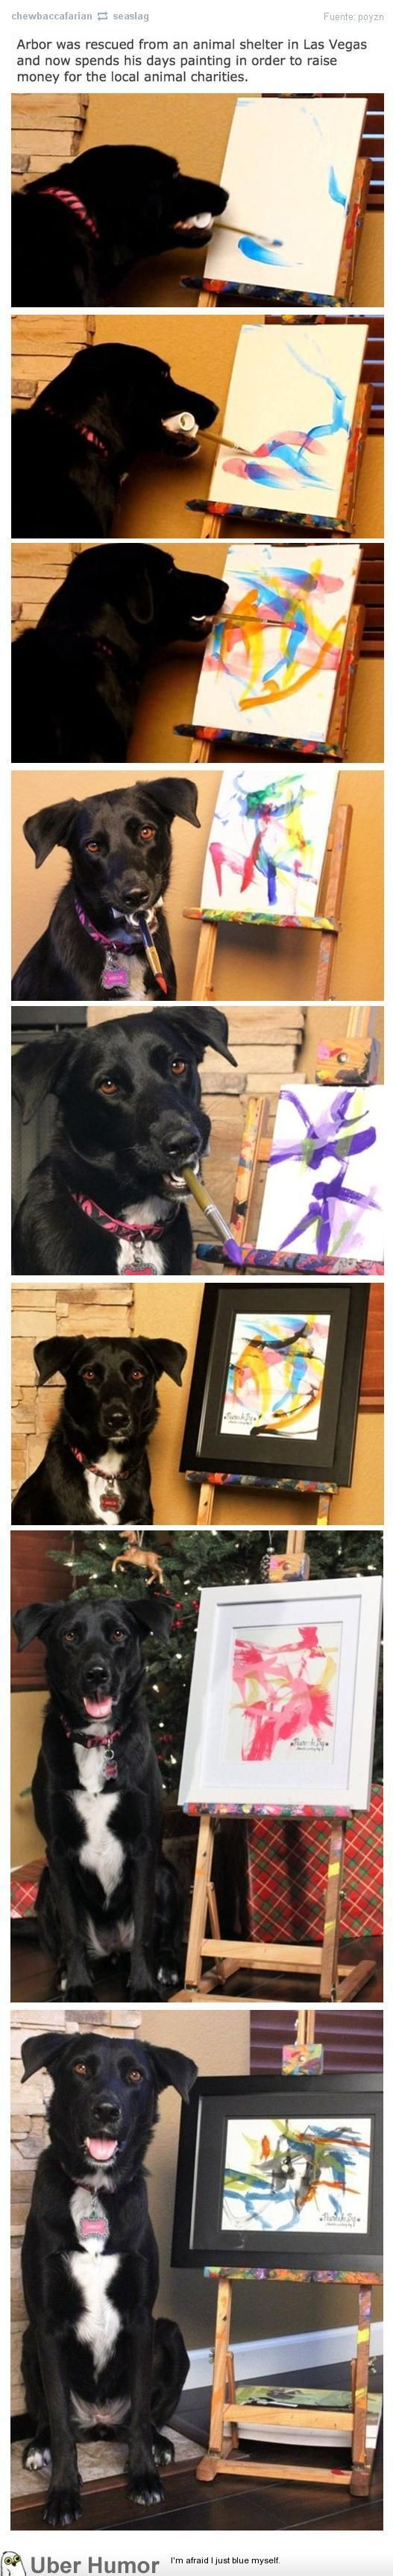 Wow! Arbor the rescue dog paints to raise money for charity!